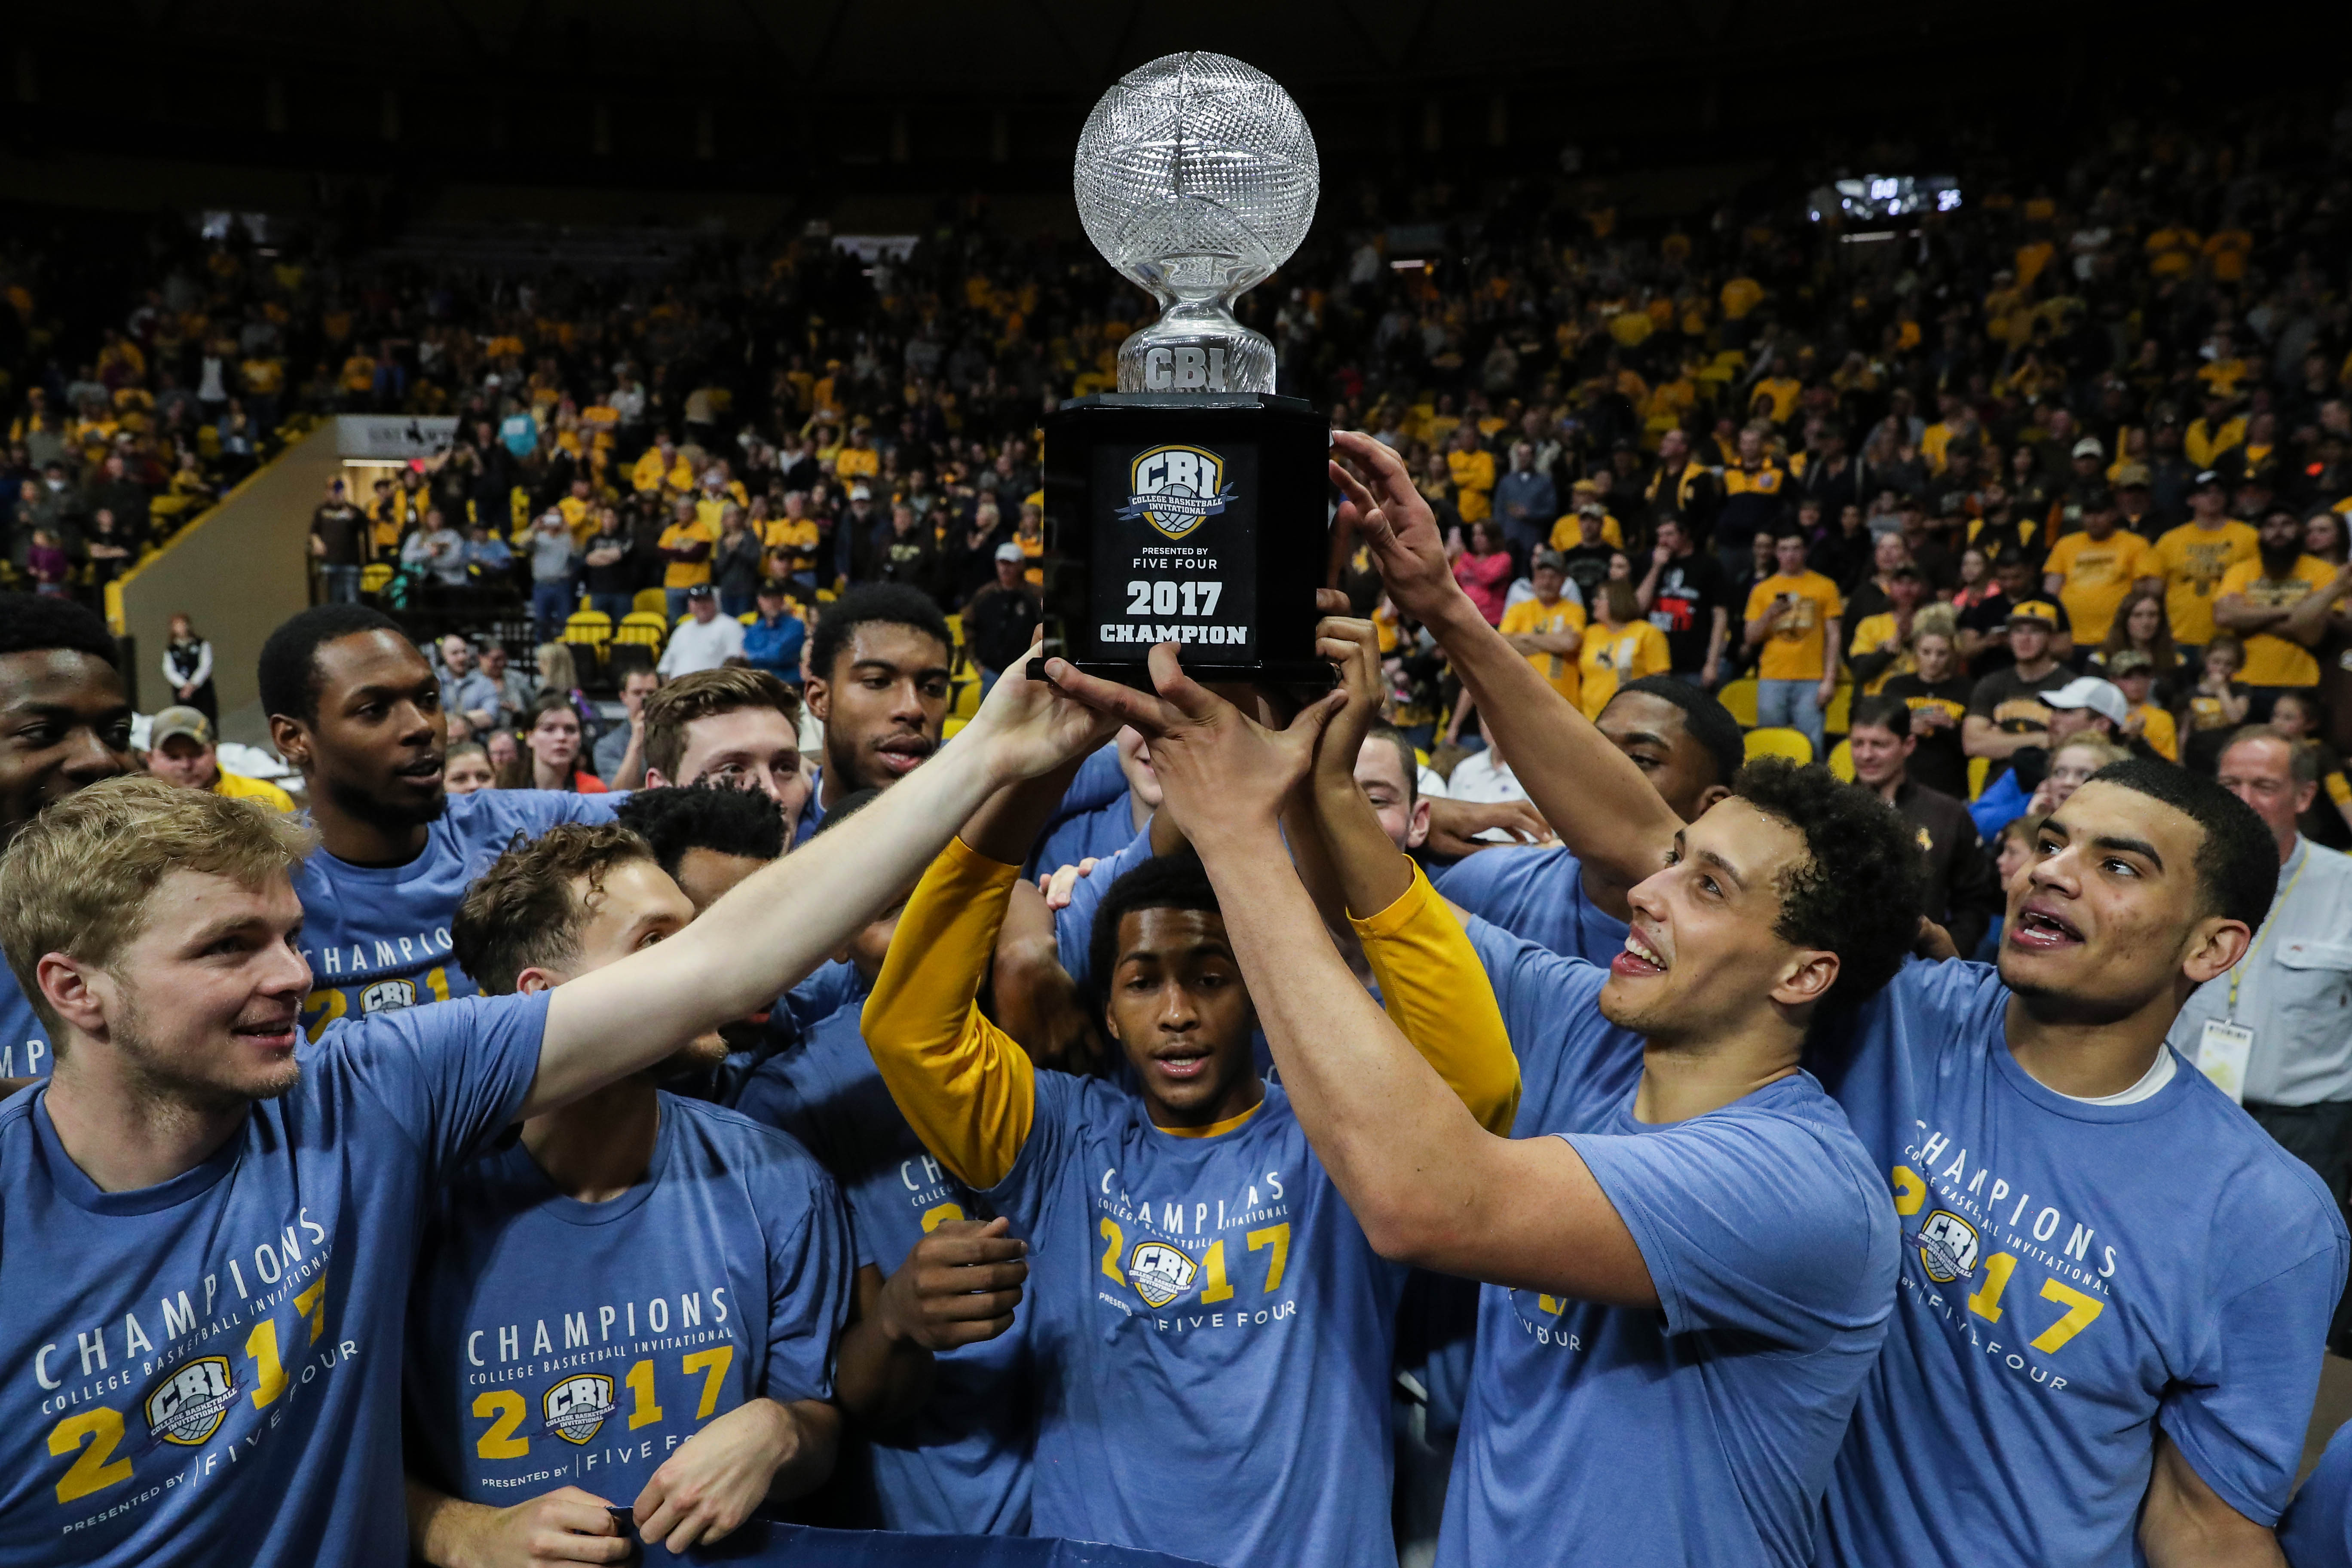 Wyoming Captures Cbi Presented By Five Four Championship College